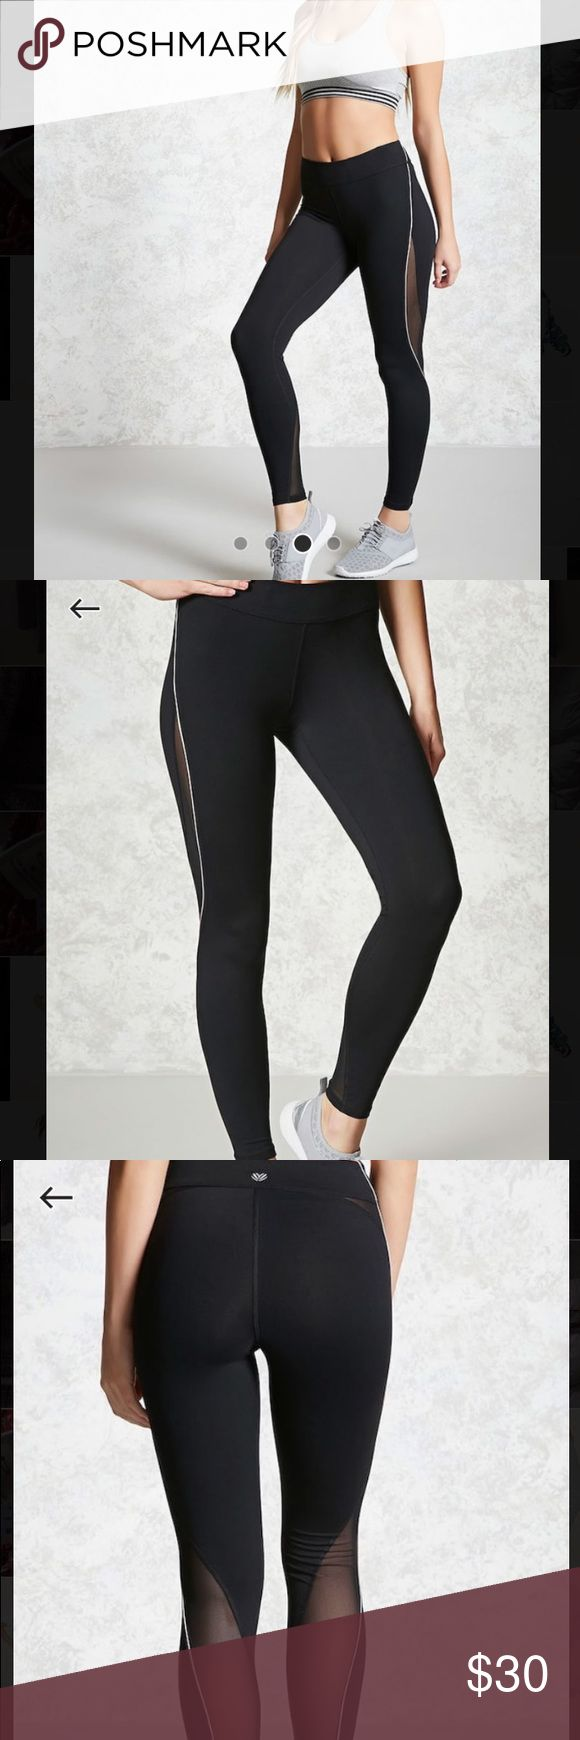 Mesh Yoga Pants Brand new mesh yoga pants! Super cute and in perfect condition! Size LARGE! 💫 Pants Leggings